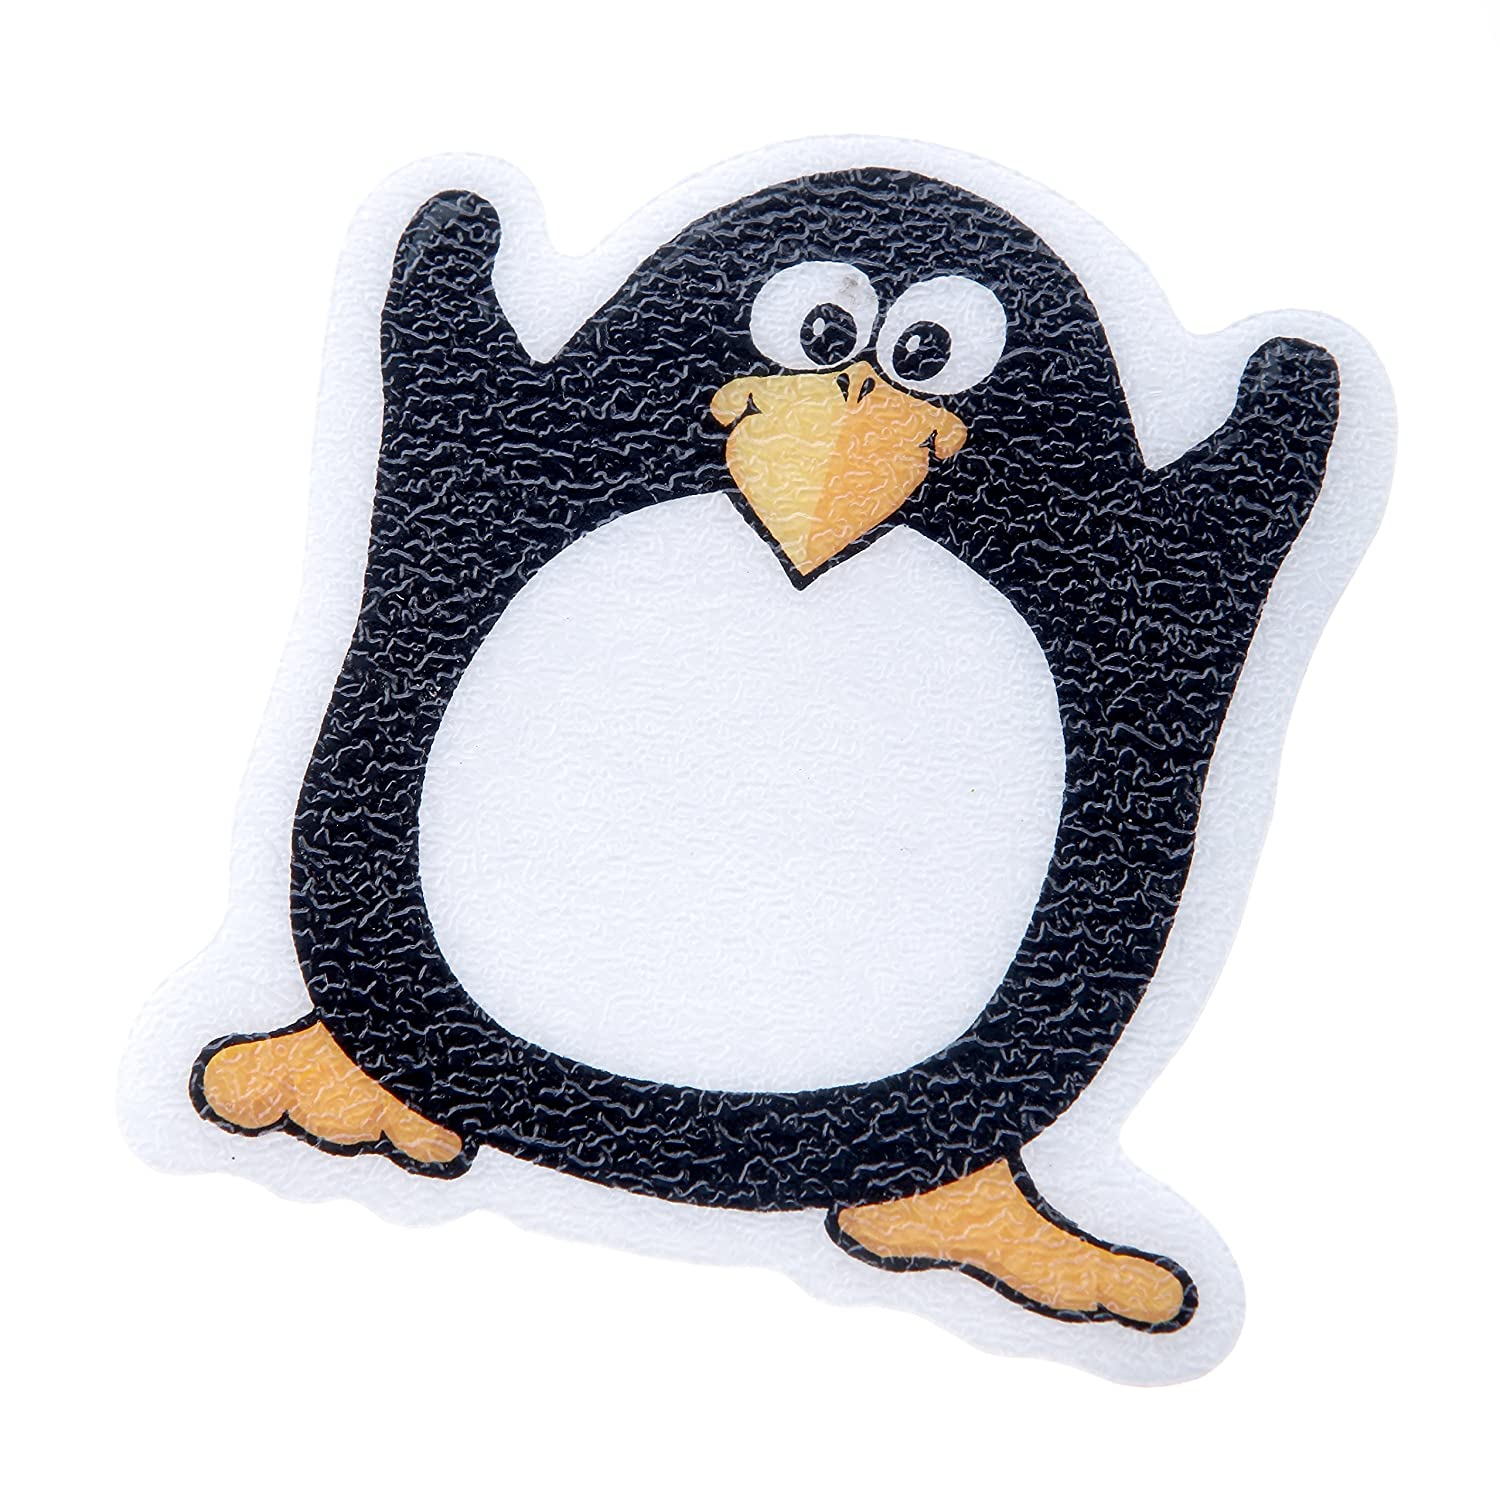 SlipX Solutions Adhesive Bath Treads: Penguin Tub Tattoos Add Non-Slip Traction to Tubs, Showers & Other Slippery Spots (Kid Friendly, 5 Count, Reliable Grip)